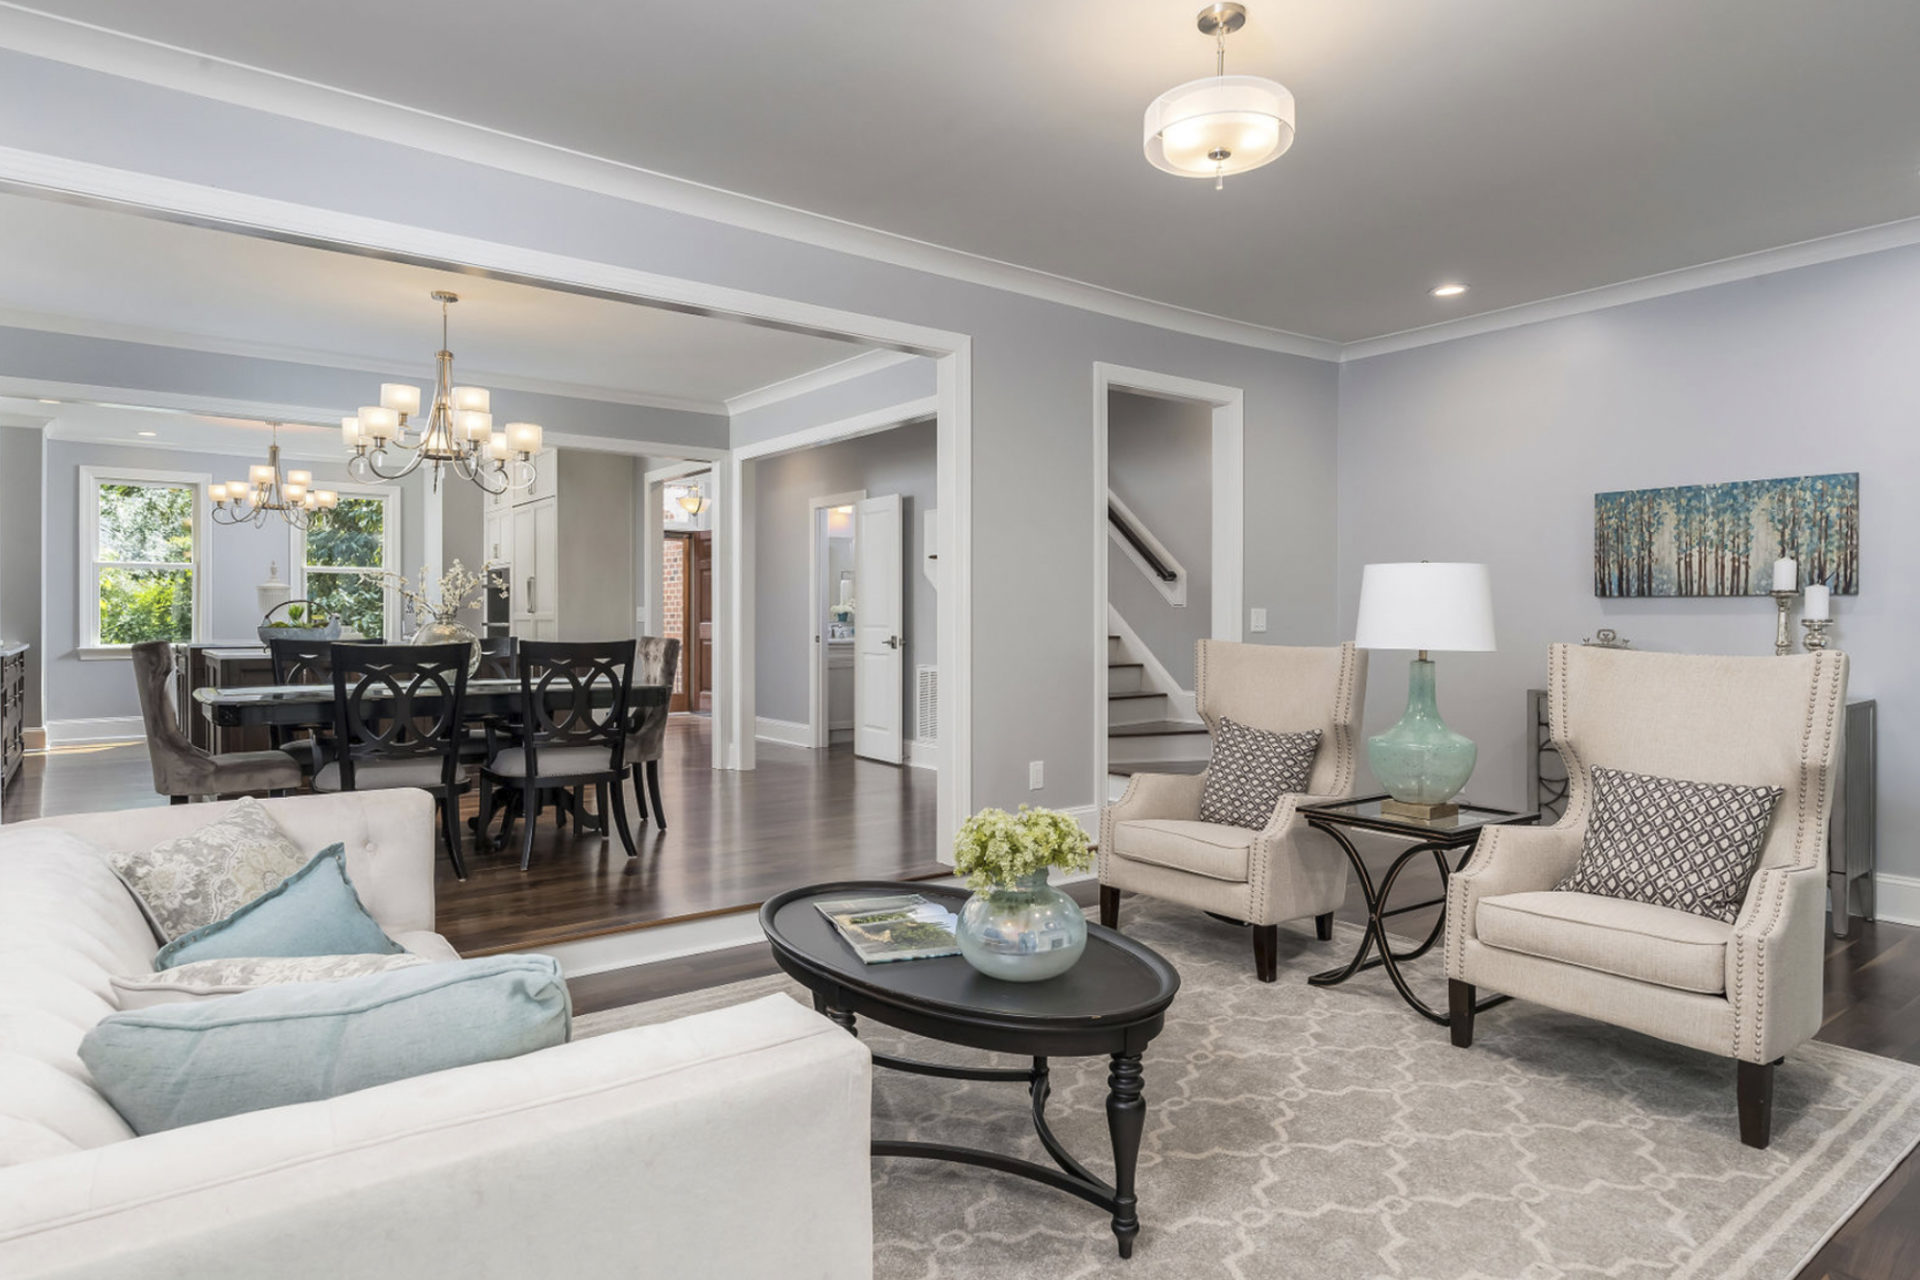 whole house remodel with grey walls and beige colors